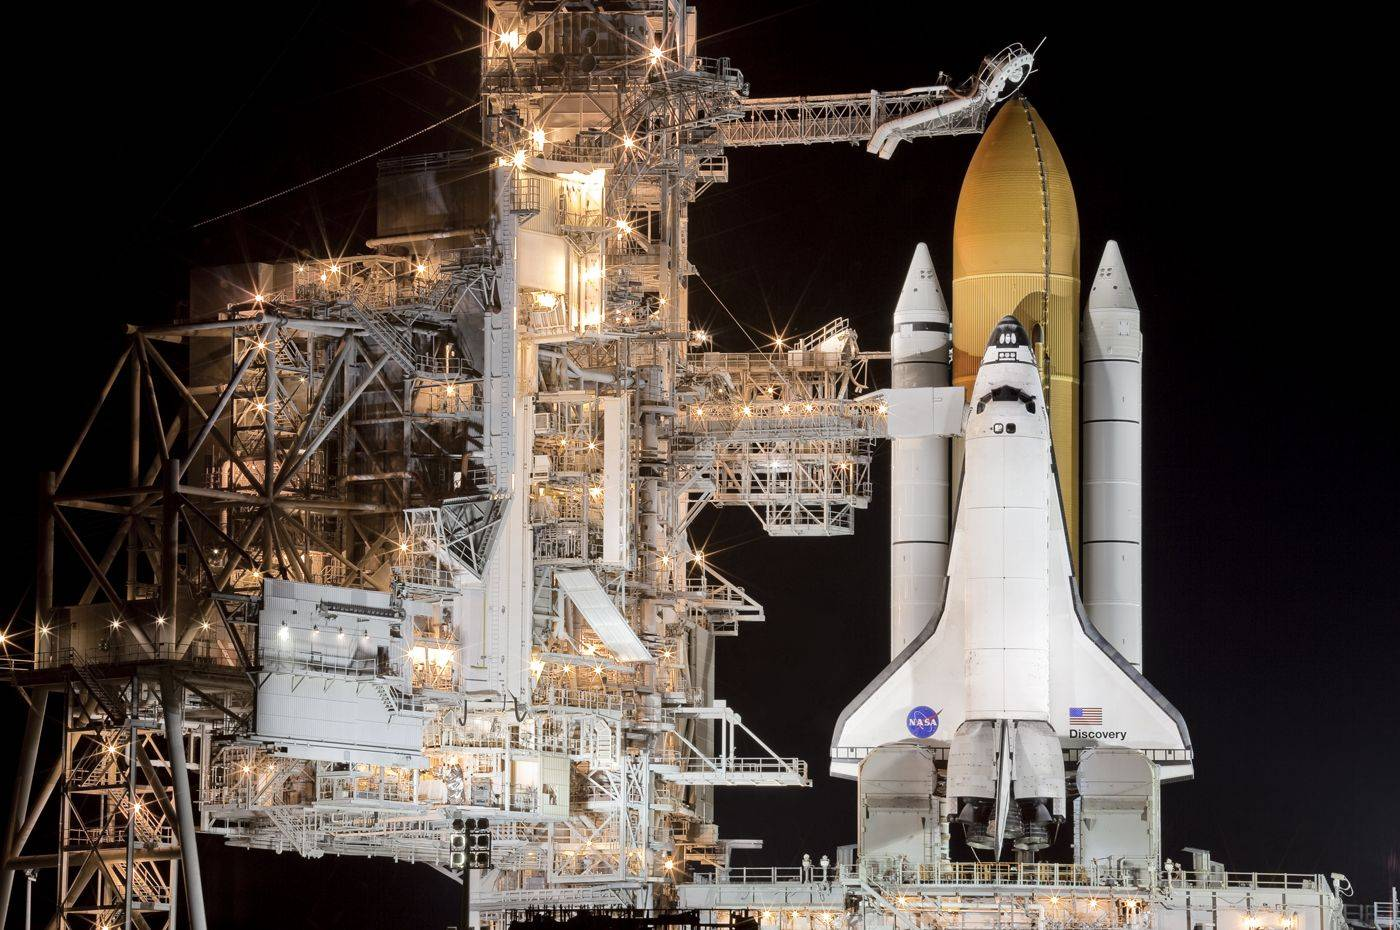 Final preparations under way for another space shuttle launch.